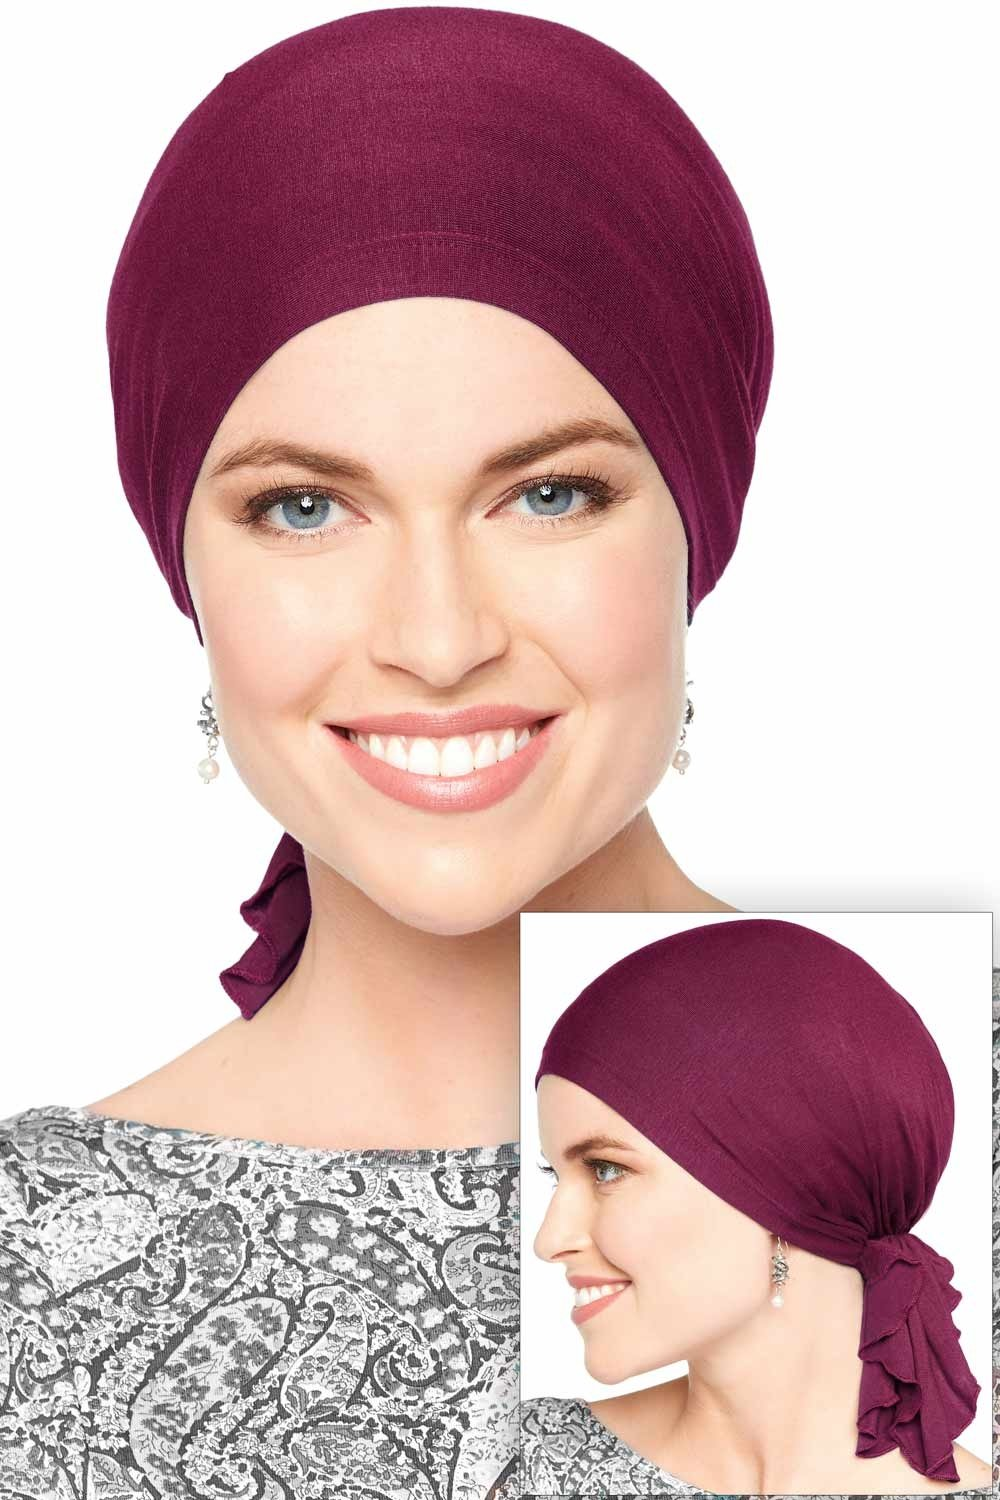 Bamboo Slip On Pre Tied Scarf | Head Scarf | Chemo & Cancer Scarves Luxury Bamboo - Denim Headcovers Unlimited SV-70122-DEN